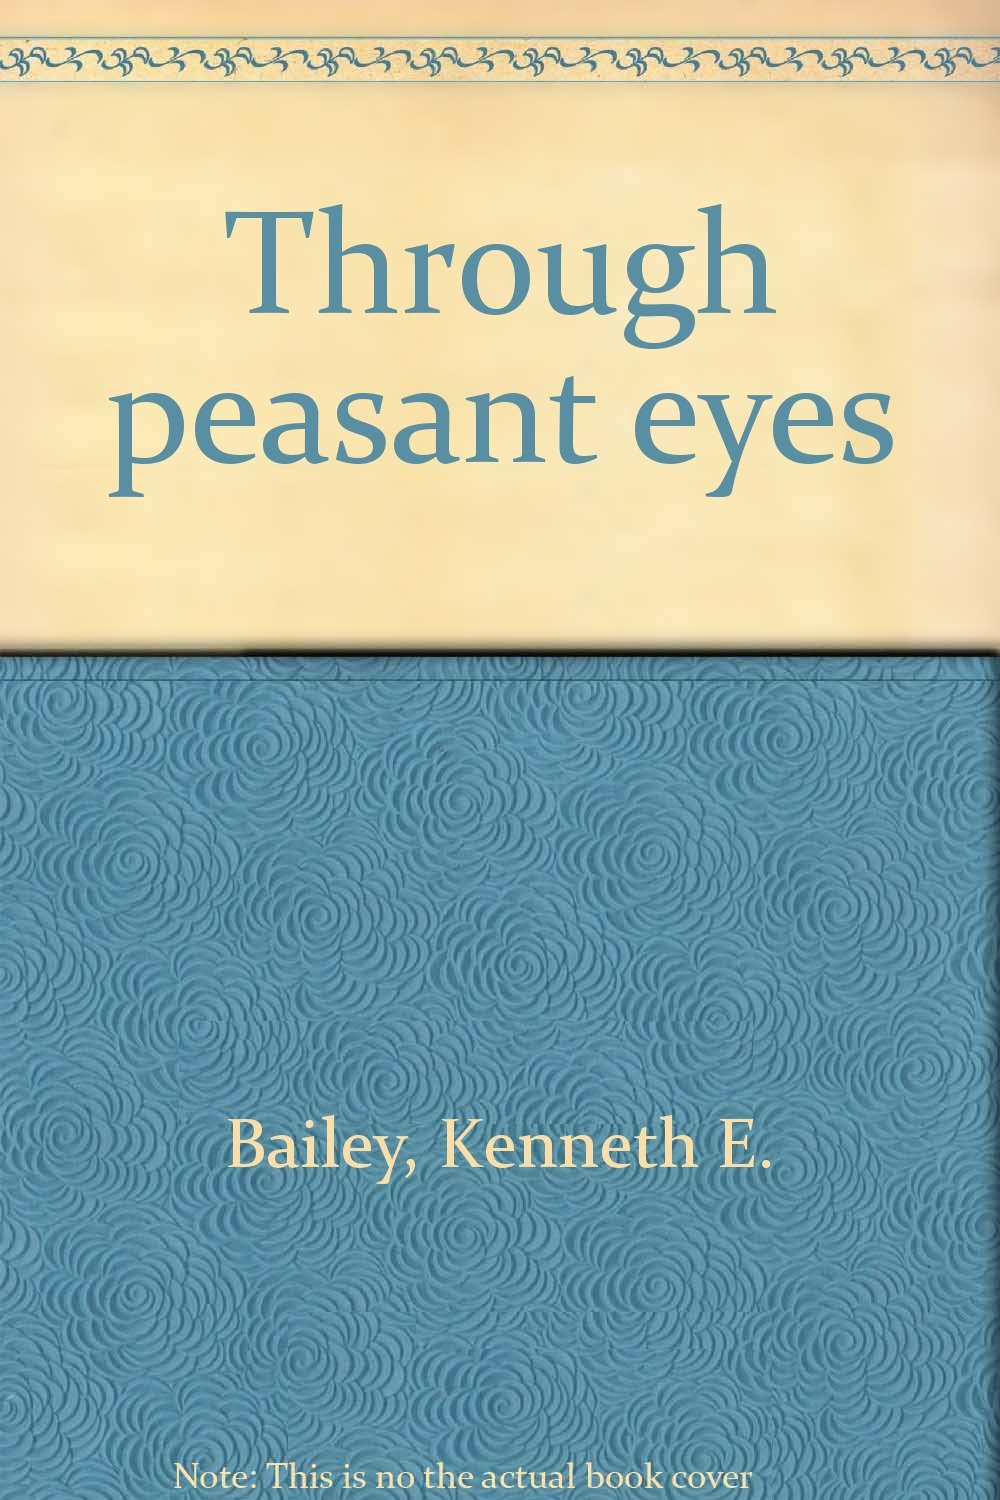 Through Peasant Eyes: More Lucan Parables, Their Culture And Style: Kenneth  E Bailey: 9780802835284: Amazon: Books